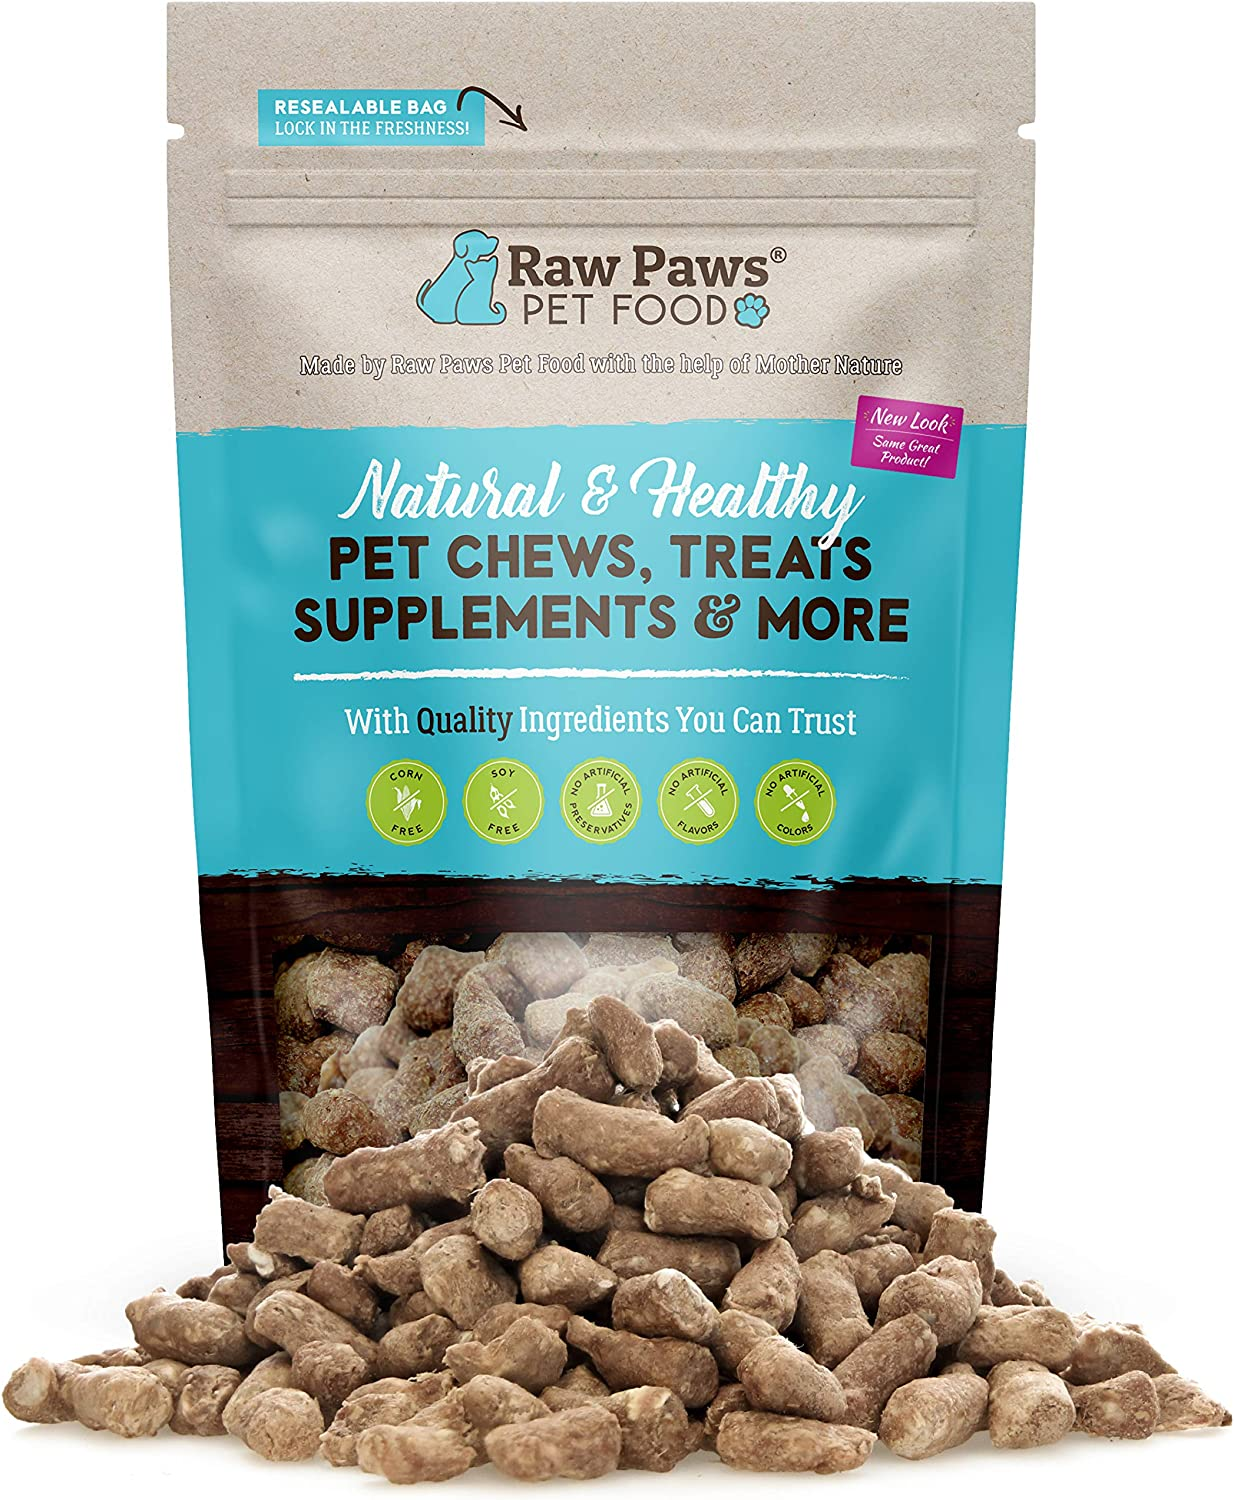 Raw Paws Pet Chicken Freeze Cat Treats 4-oz Dried Large-scale sale Opening large release sale Dog